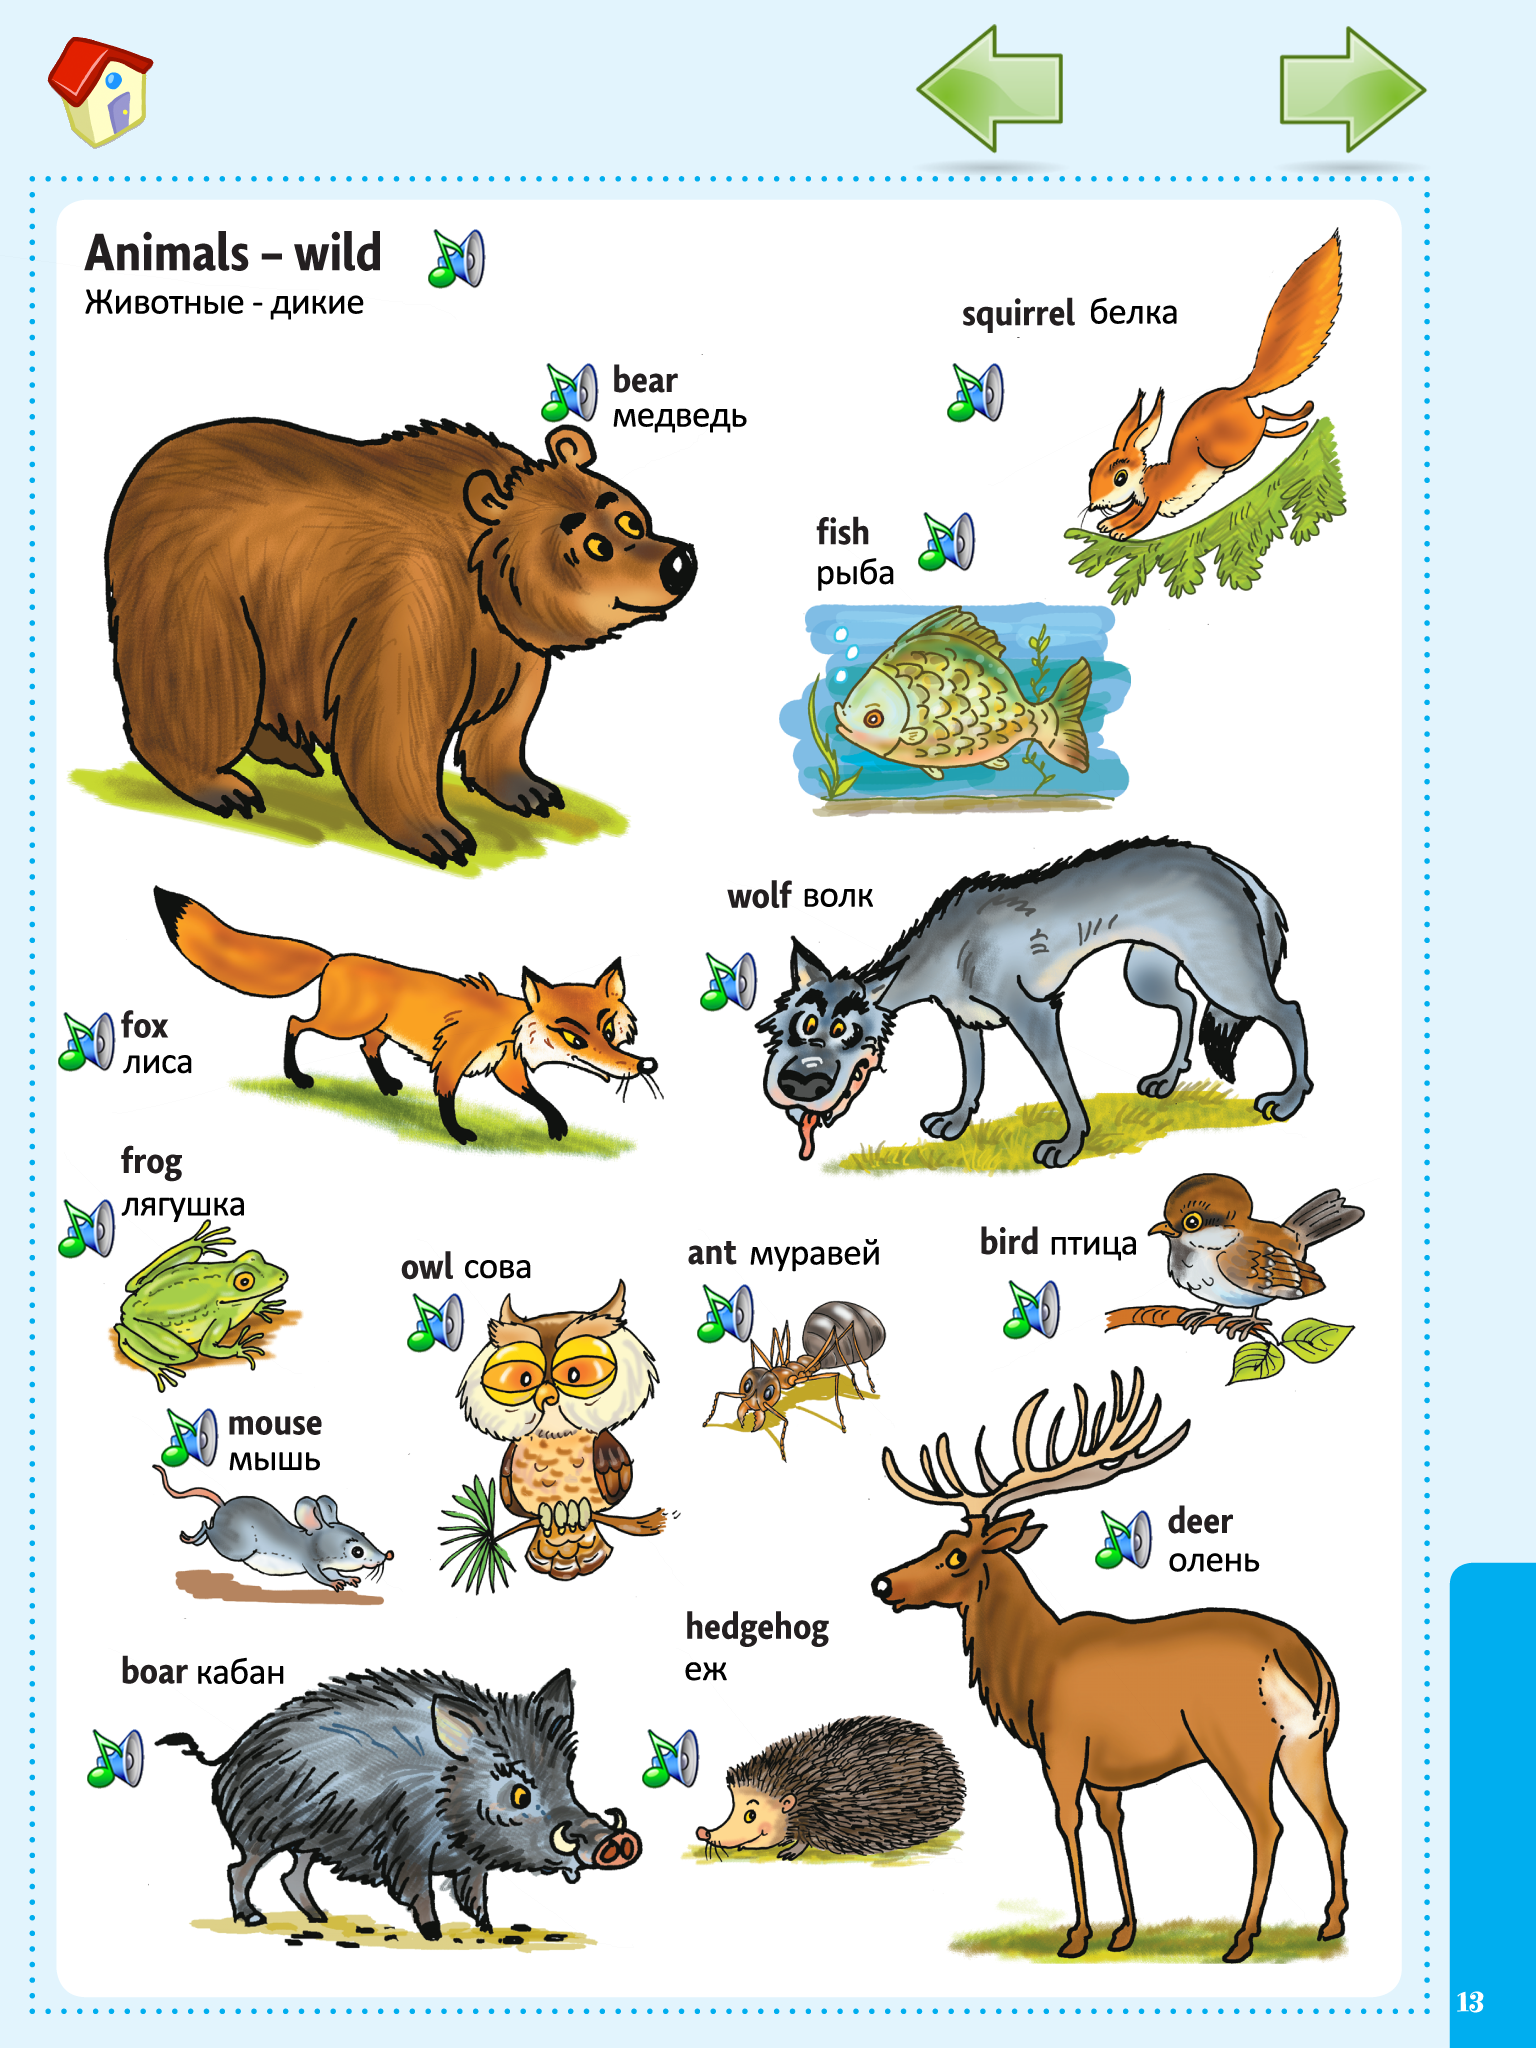 picture dictionary for kids in english - Google Search ...